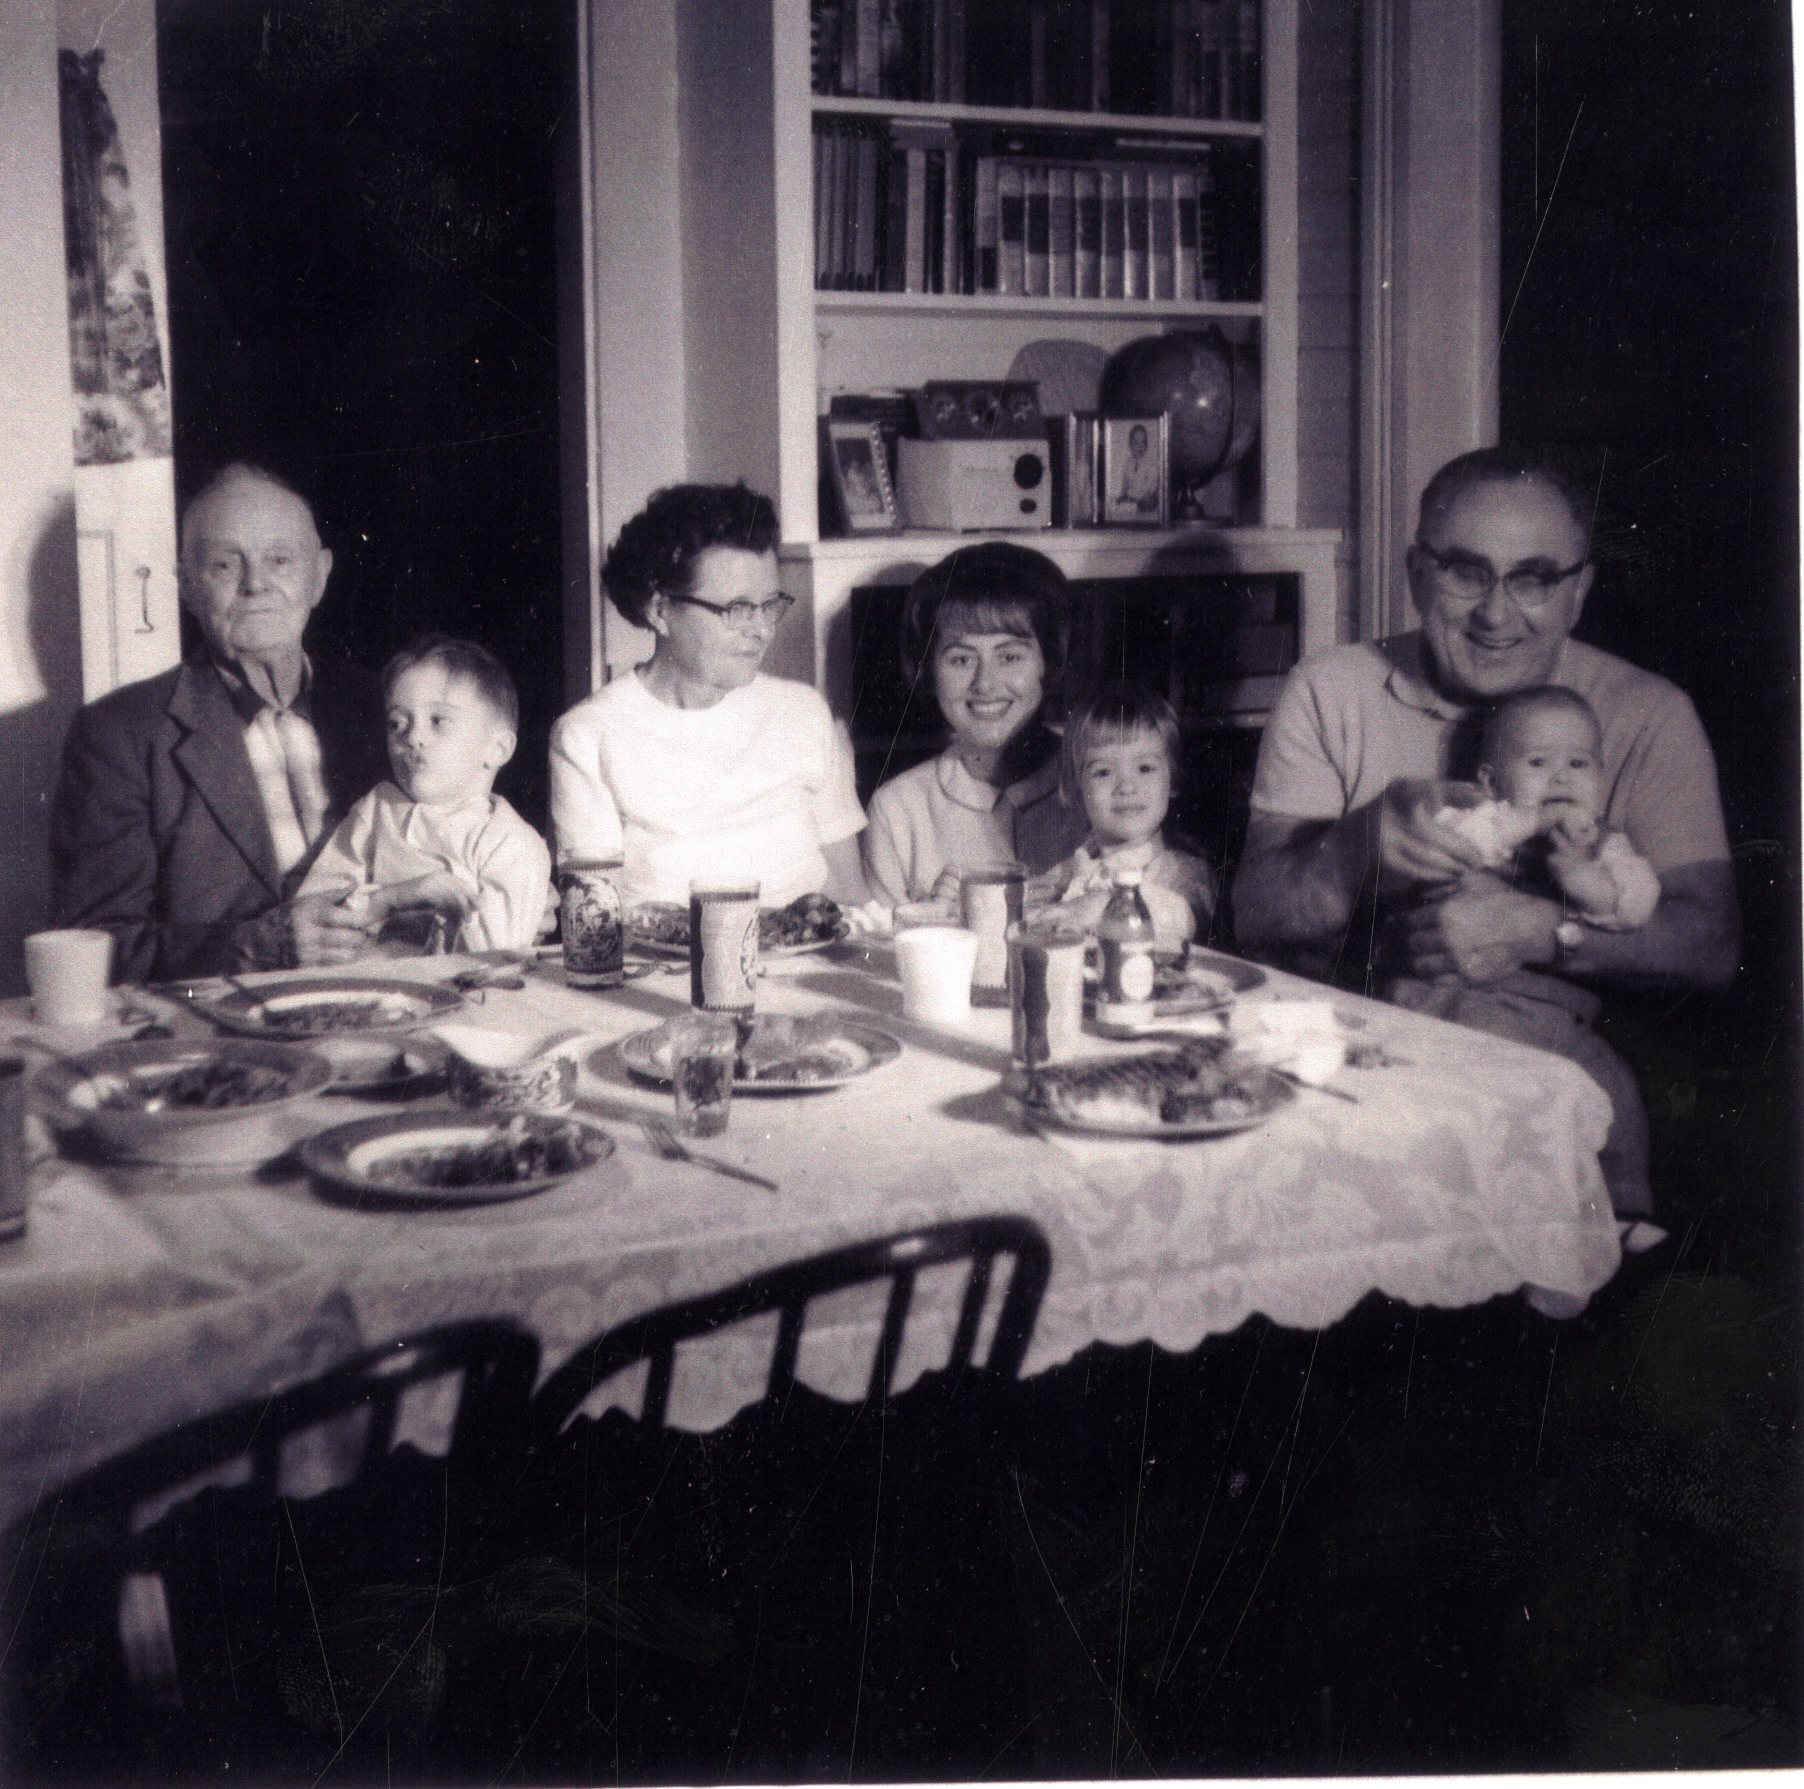 Van Hooser and Fullop Families having Sunday dinner in the Greenwood House, Clearwater, Florida, circa 1967.